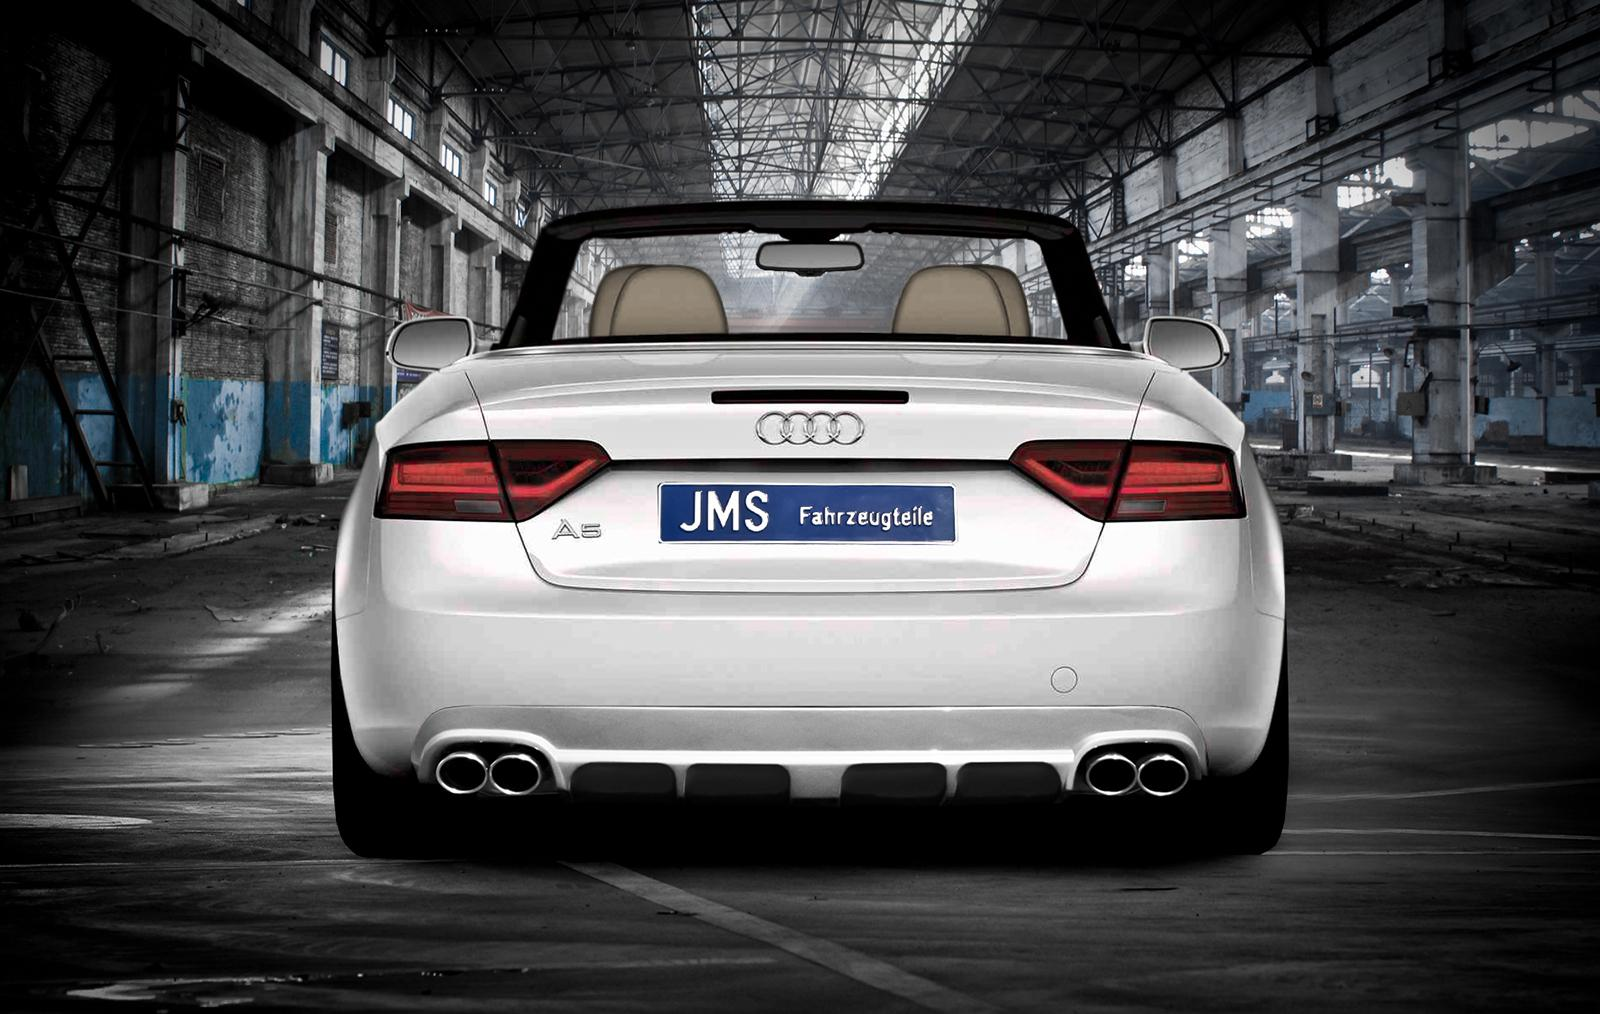 audi a5 cabrio by jms autoevolution. Black Bedroom Furniture Sets. Home Design Ideas